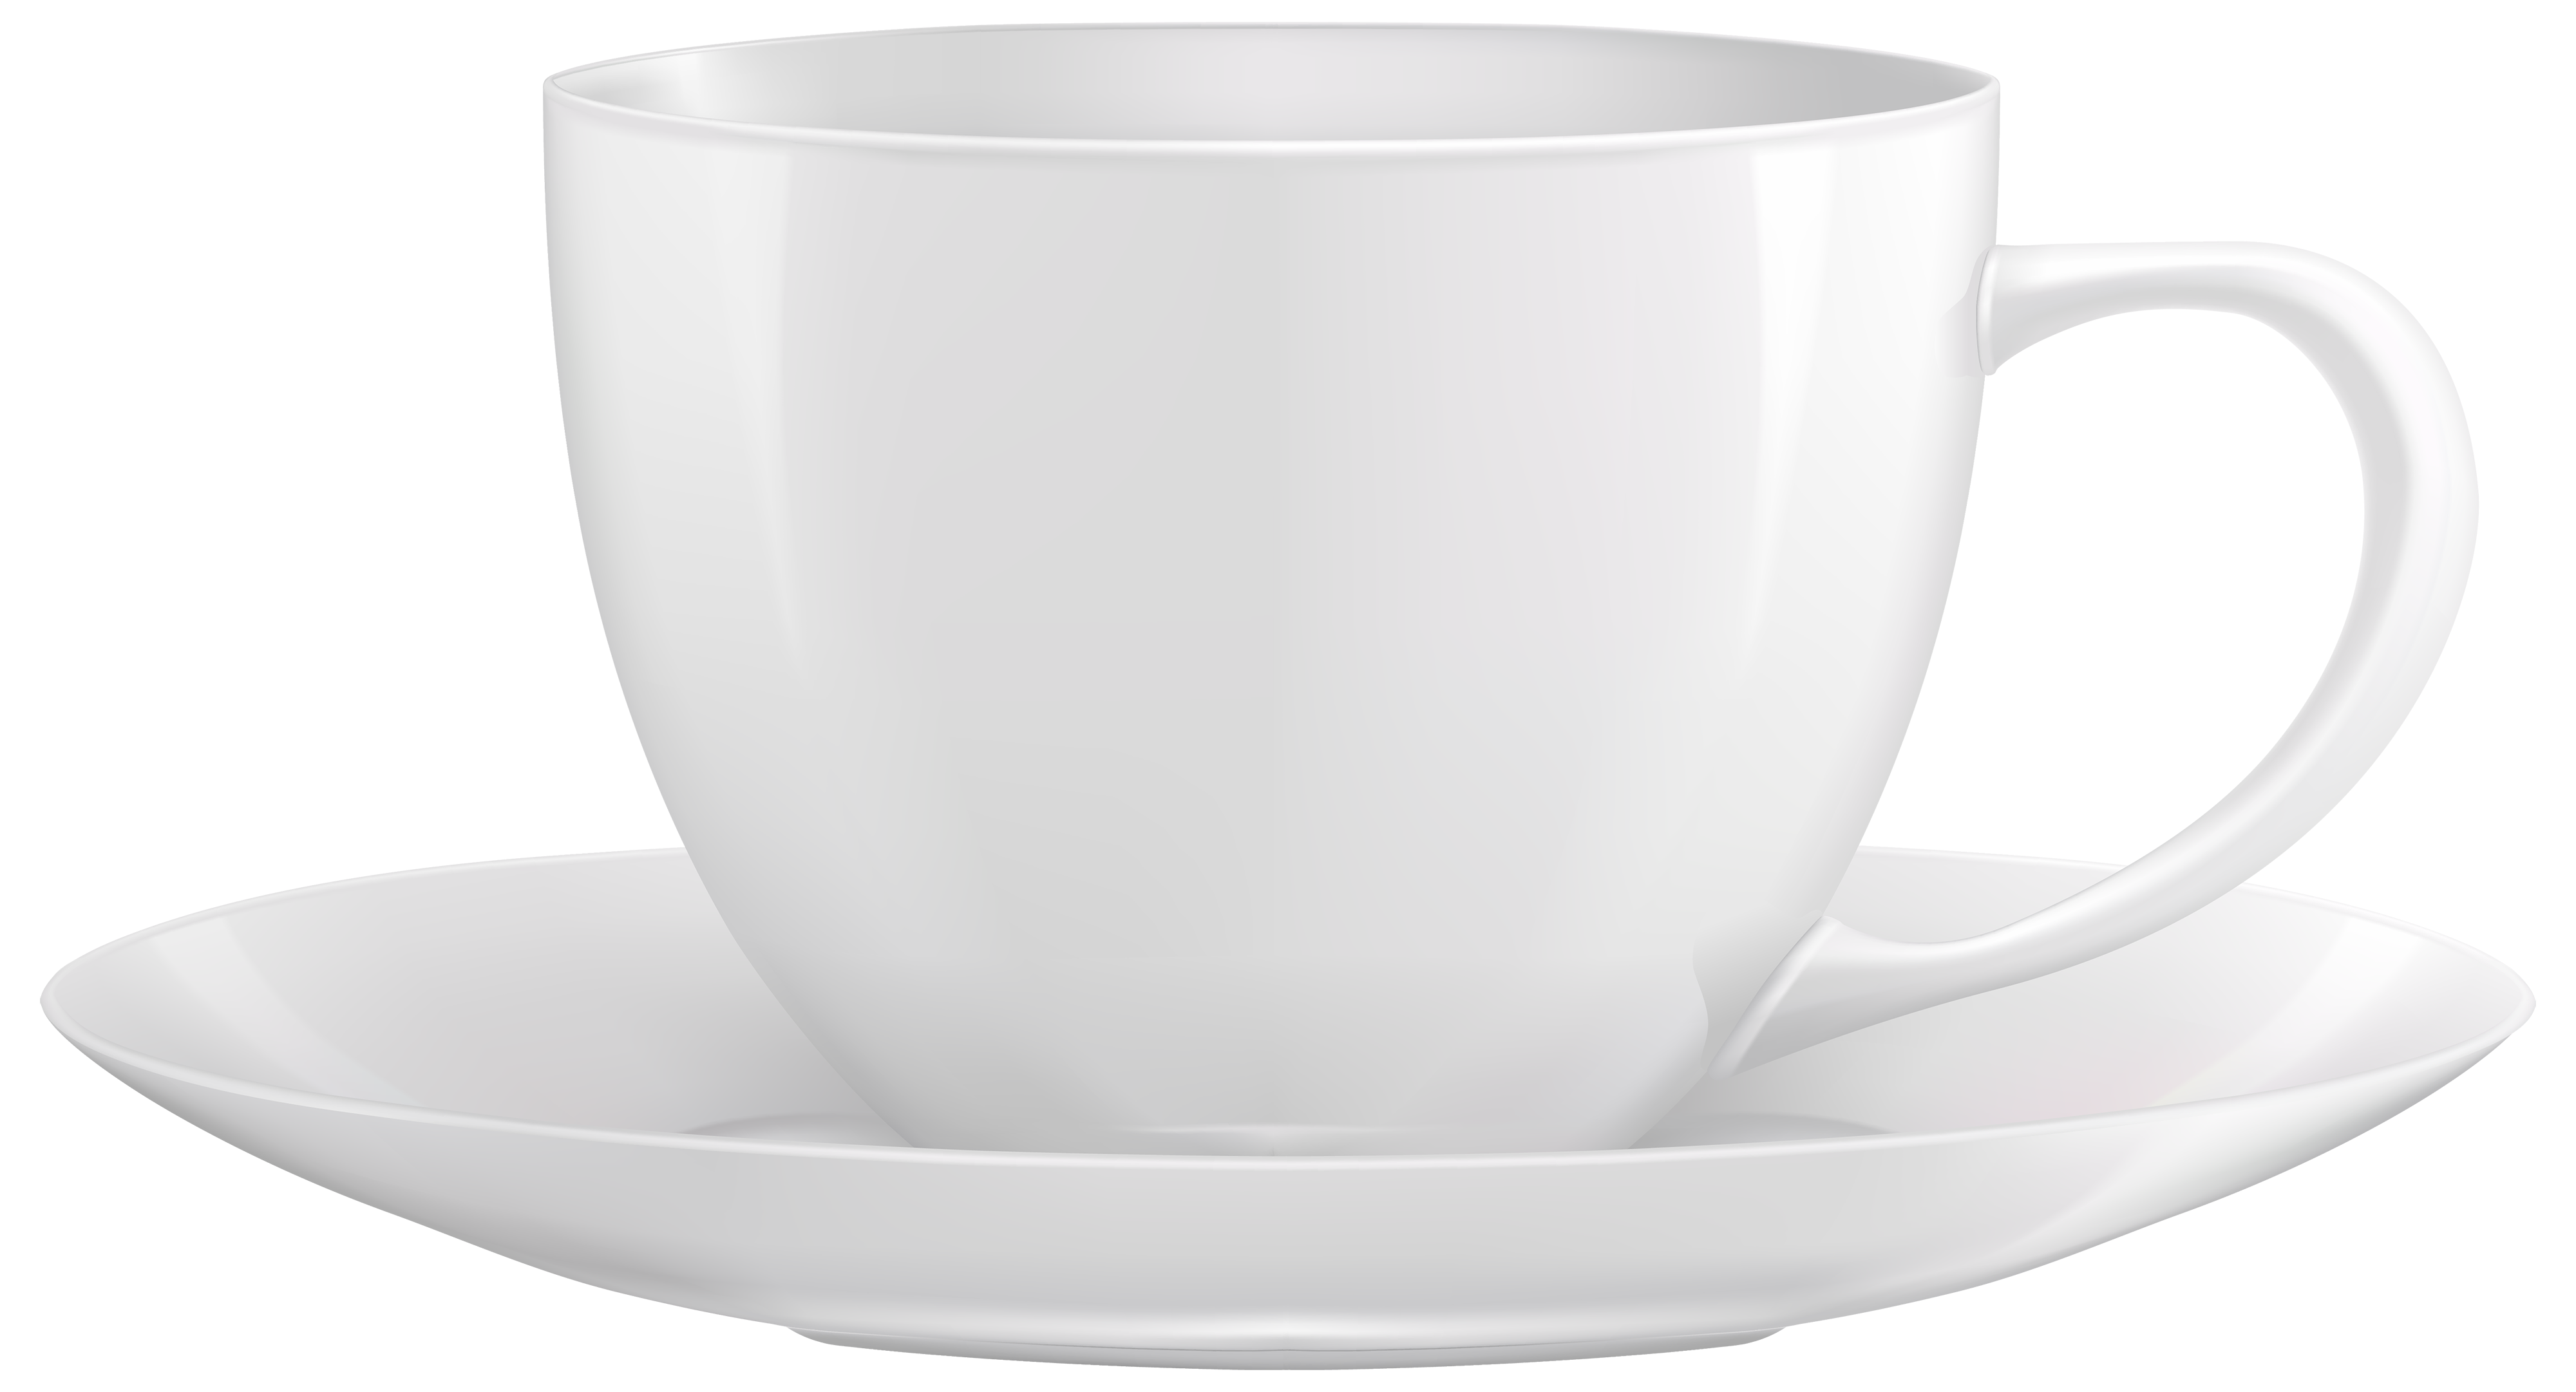 White png best web. Cup clipart high resolution